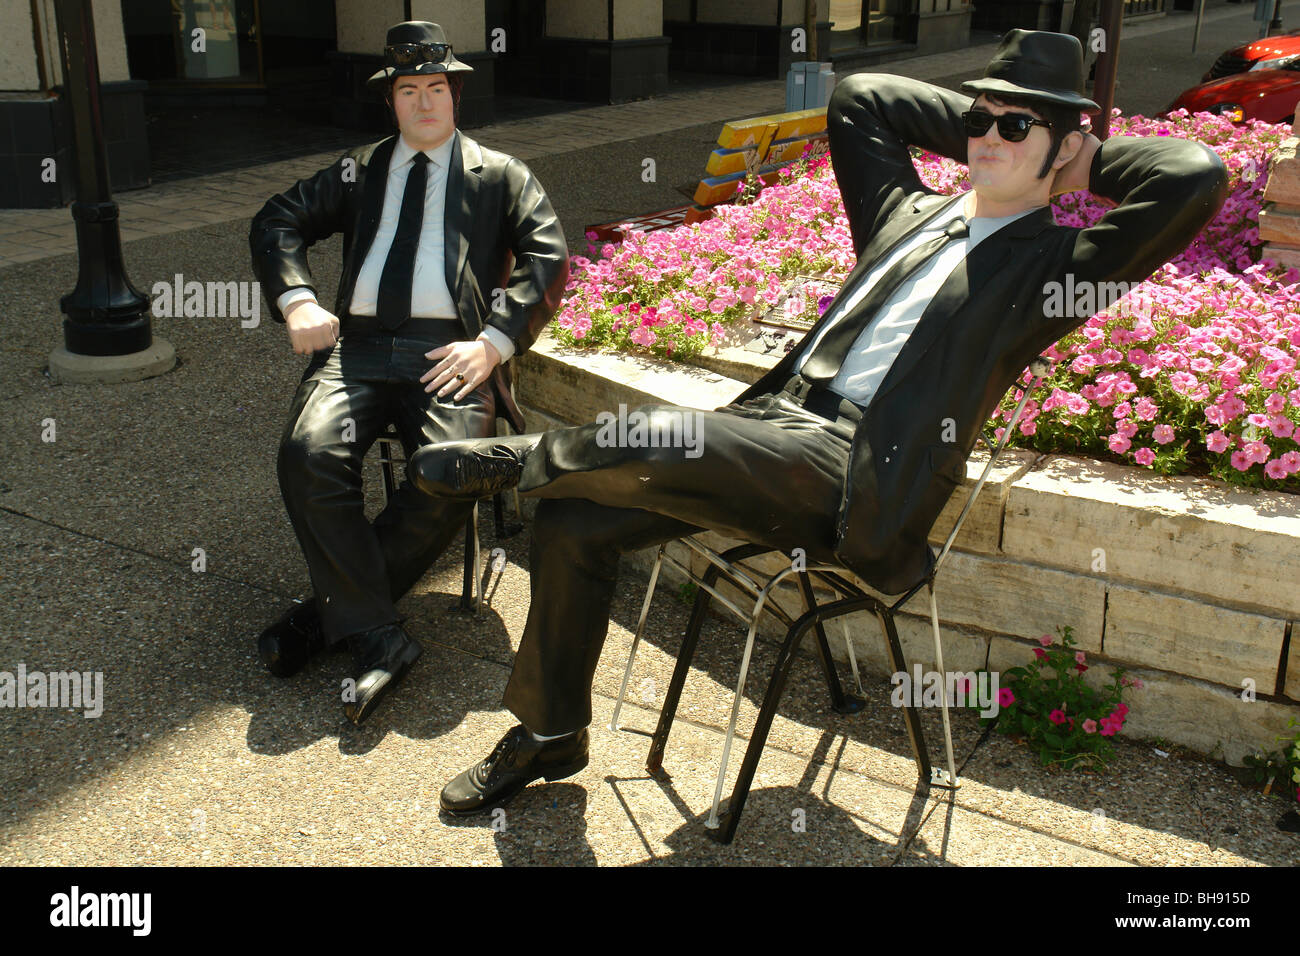 AJD65035, Rock Island, IL, Illinois, The Blues Brothers Statues, Downtown - Stock Image